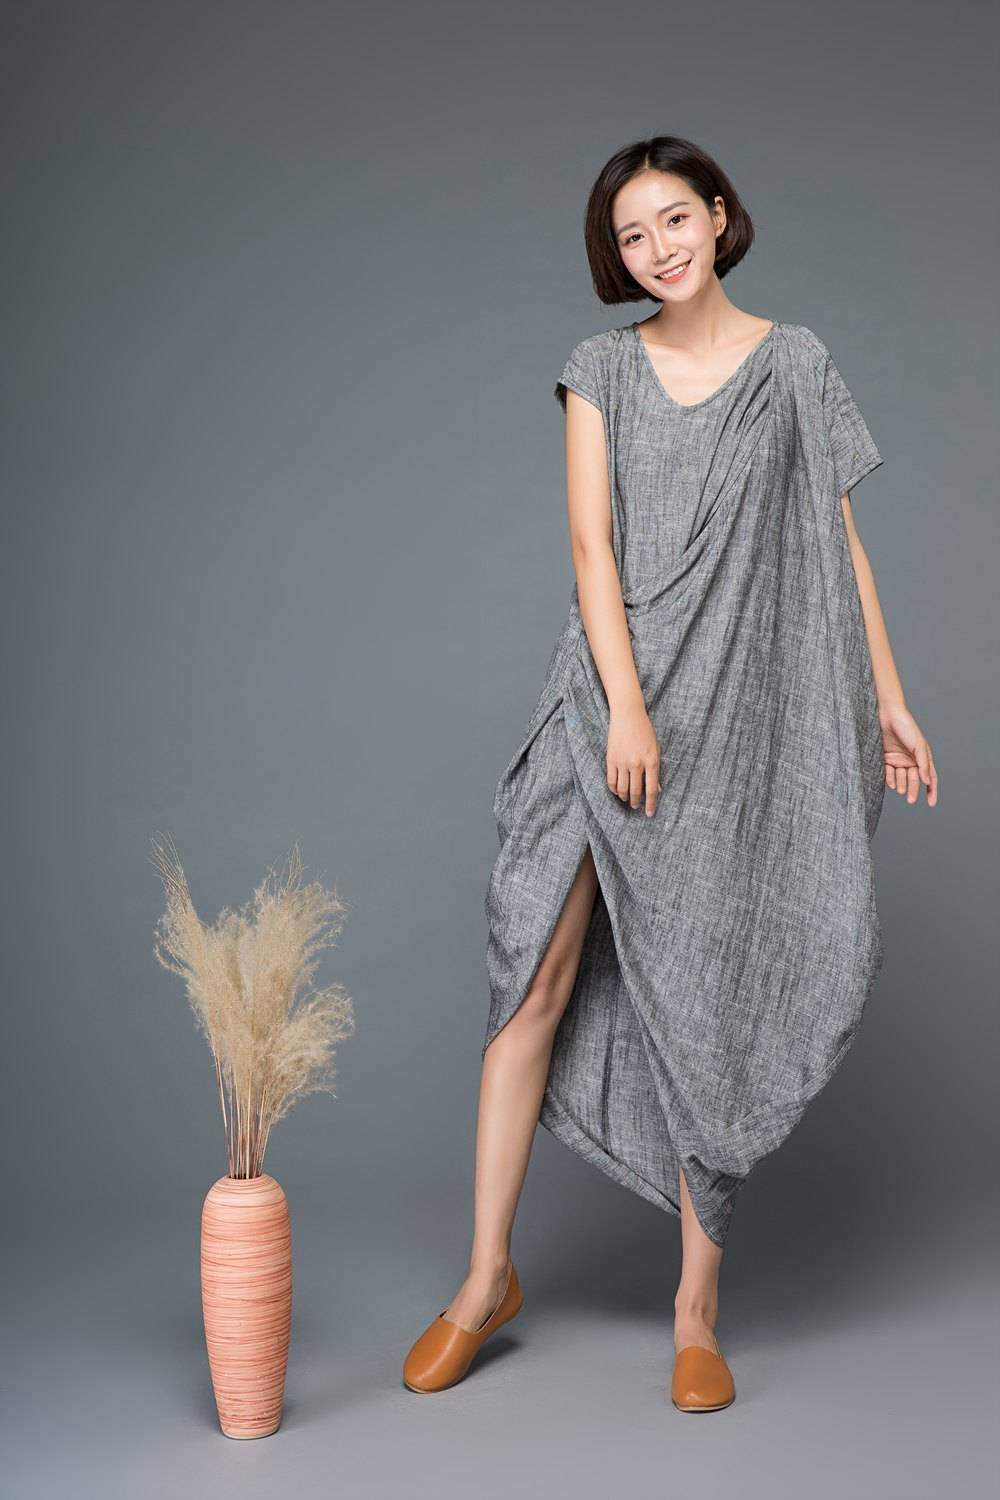 Linen dress, maxi dress, gray dress, asymmetrical dress, summer linen dress, summer dress, womens dress, loose dress, custom dress  C1147